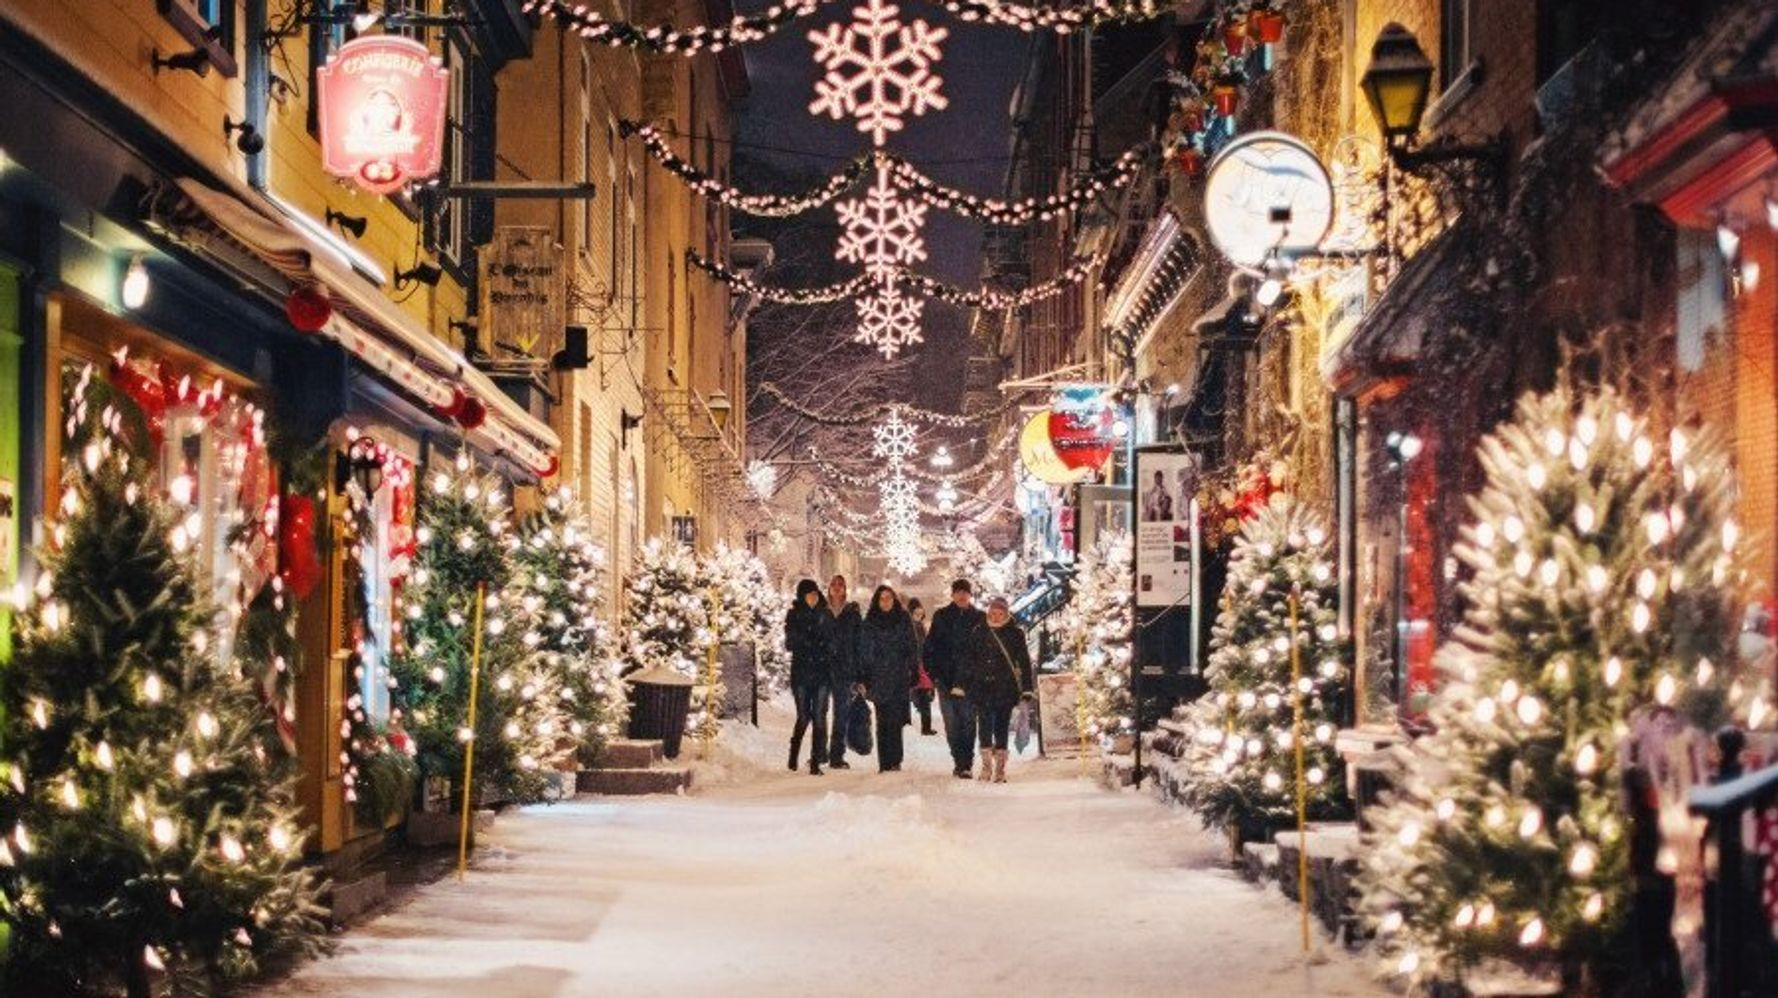 Quebec Christmas 2020 5 Ways Quebec City Can Give You A Fairytale Holiday | HuffPost